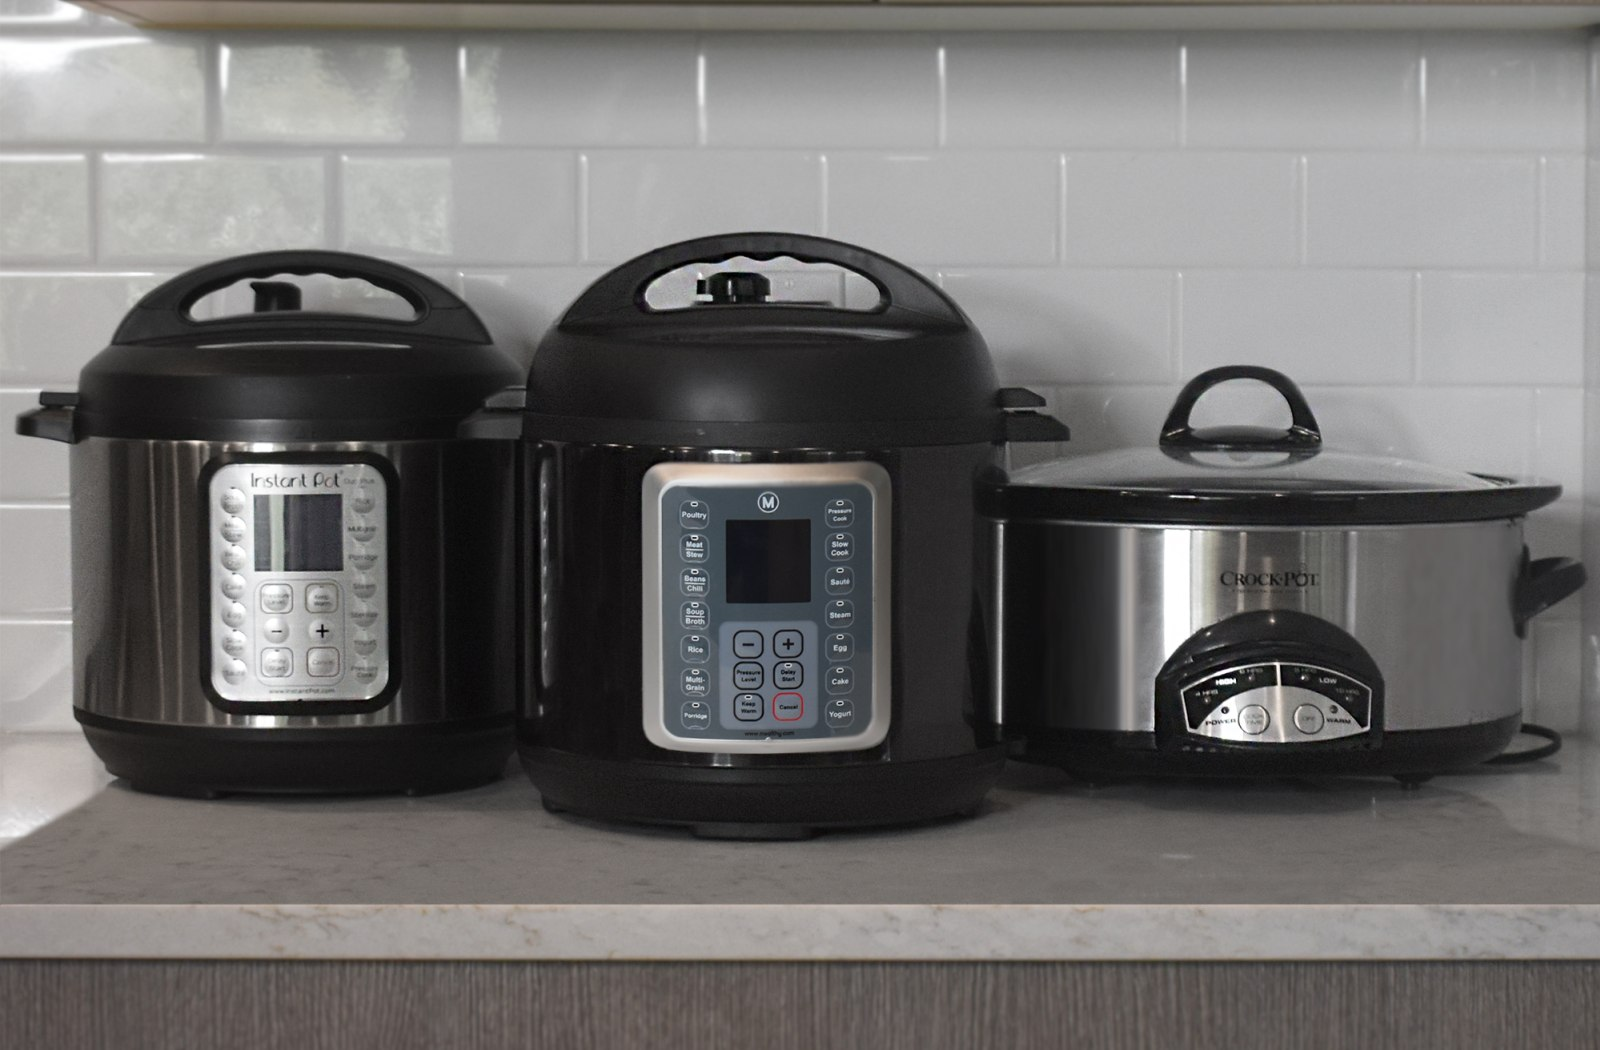 A Quick Comparison Of The Mealthy Multipot The Instant Pot And The Crock Pot Mealthy Com